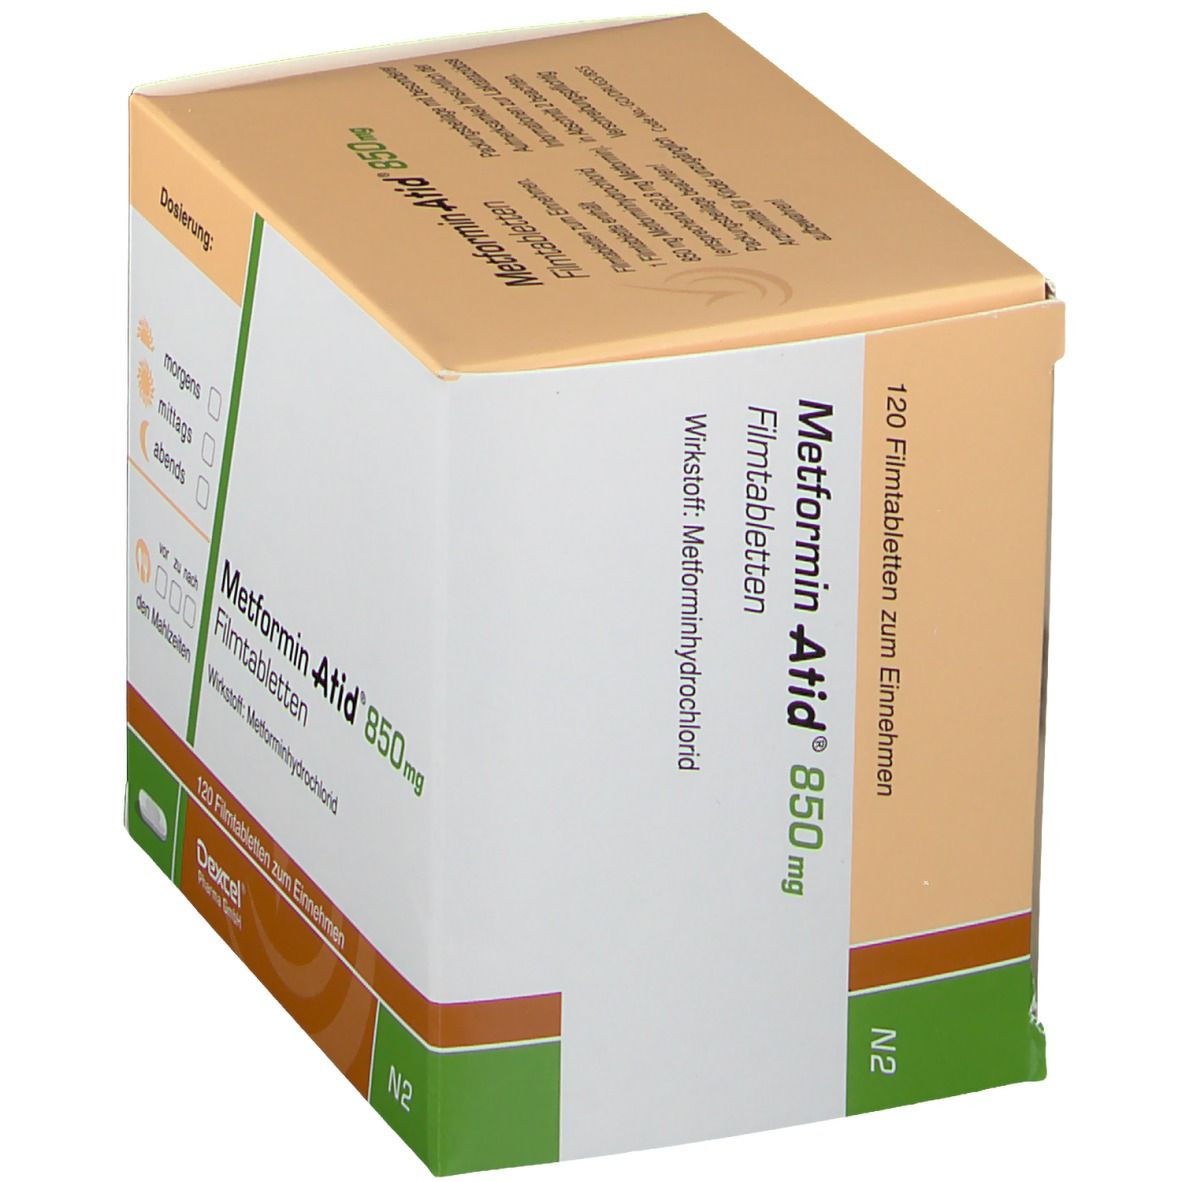 Can i get ivermectin over the counter in canada